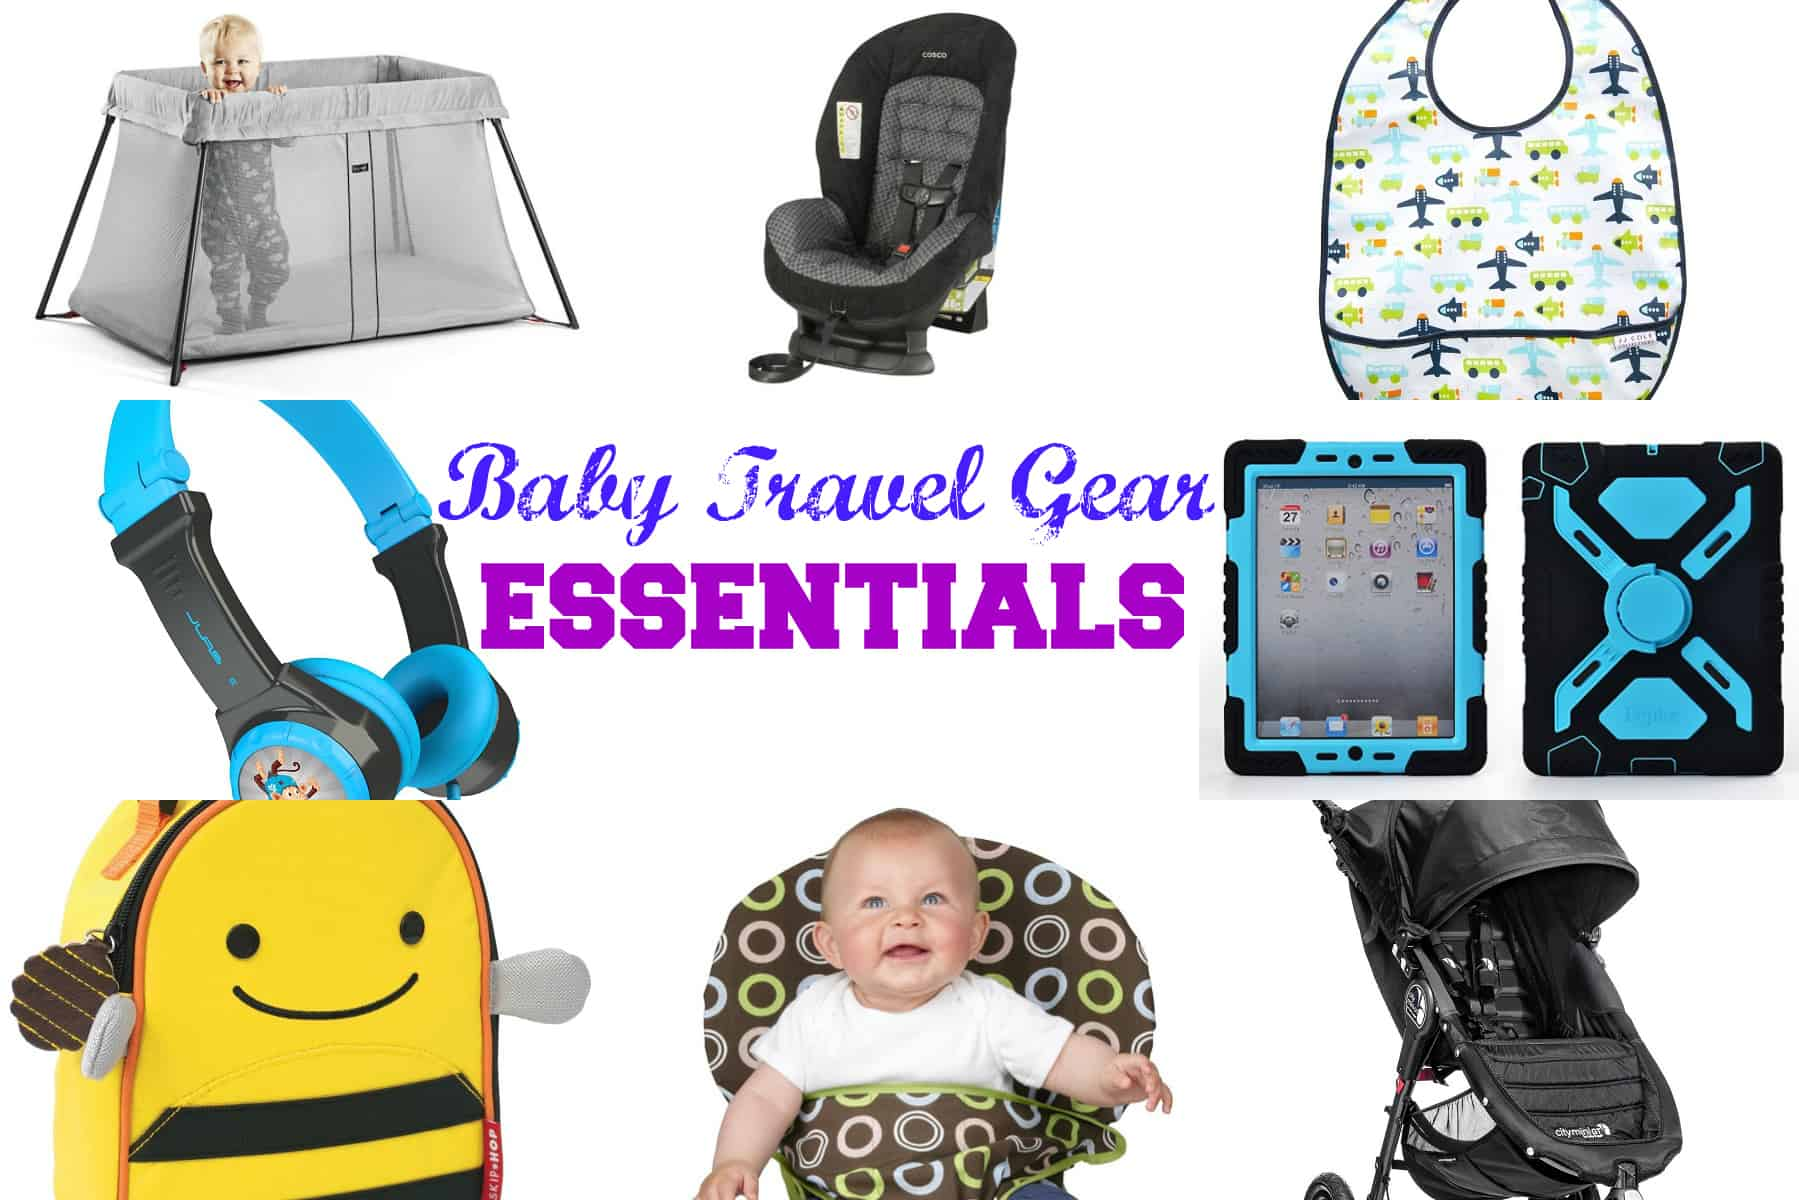 Everything Baby Travel Gear